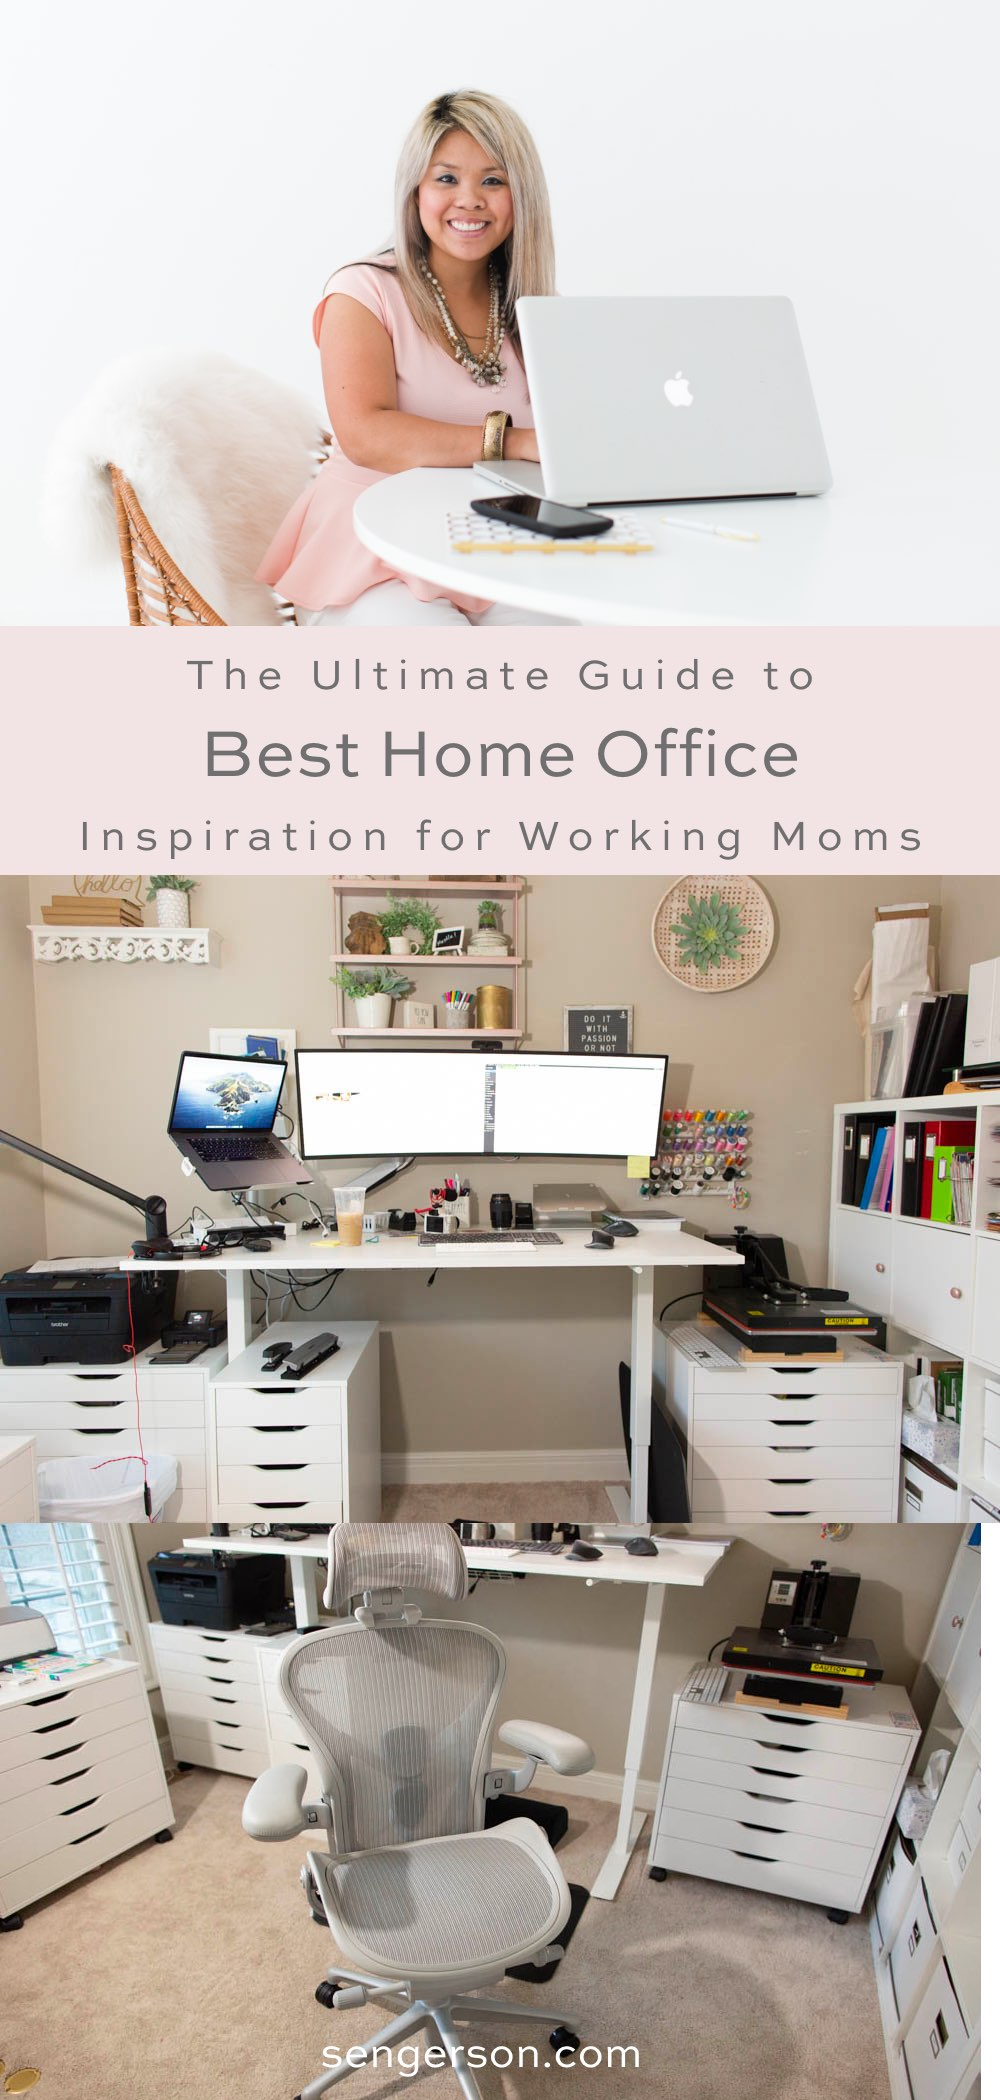 Working mom home office tips and tricks